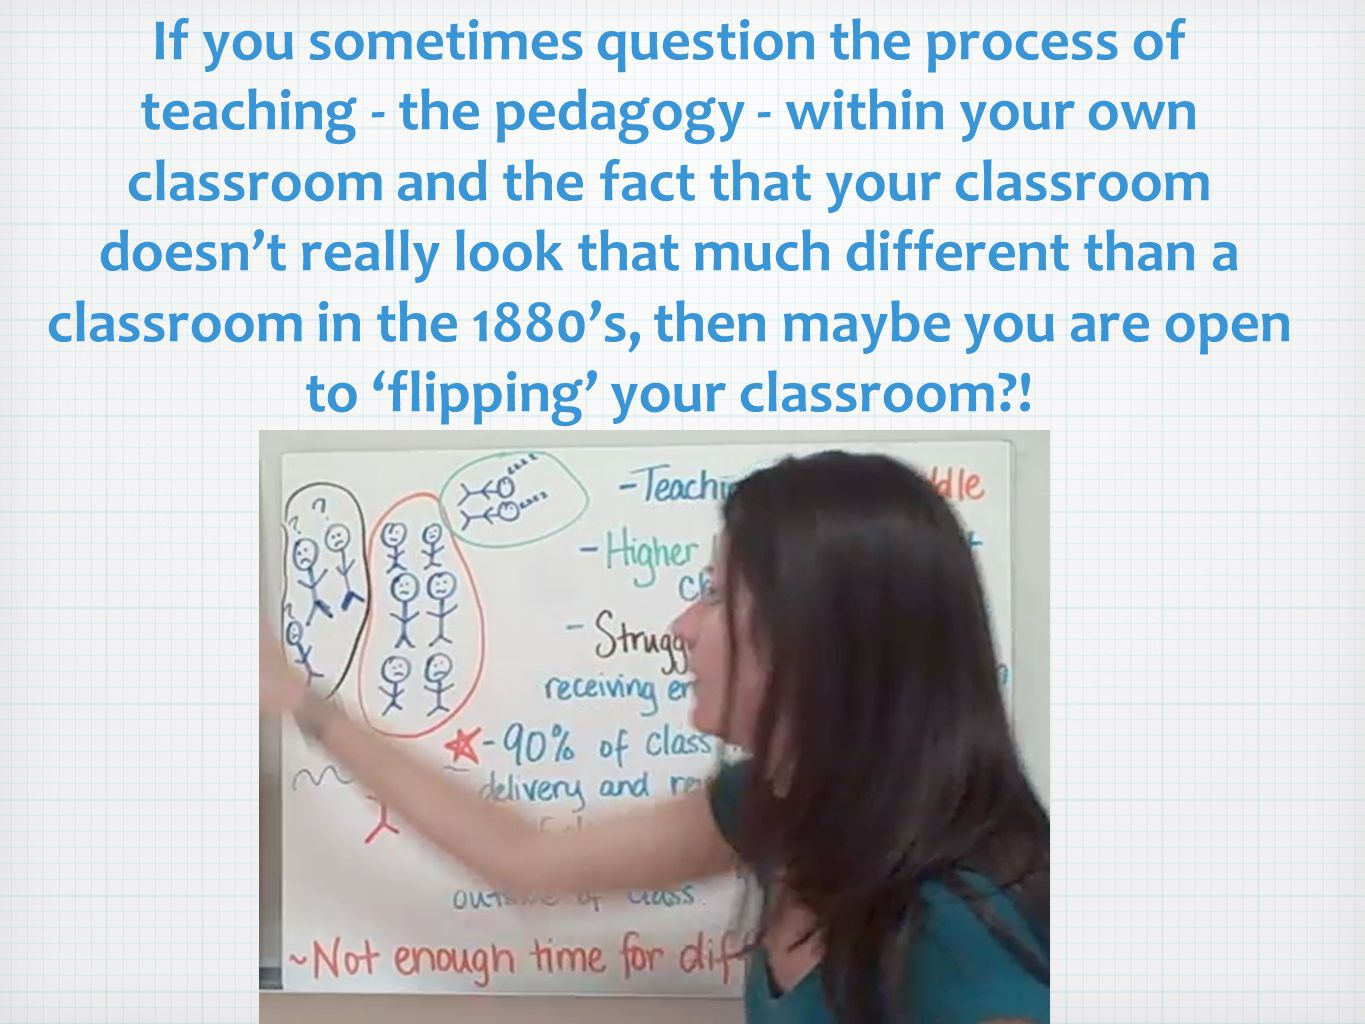 If you sometimes question the process of teaching - the pedagogy - within your own classroom and the fact that your classroom doesn't really look that